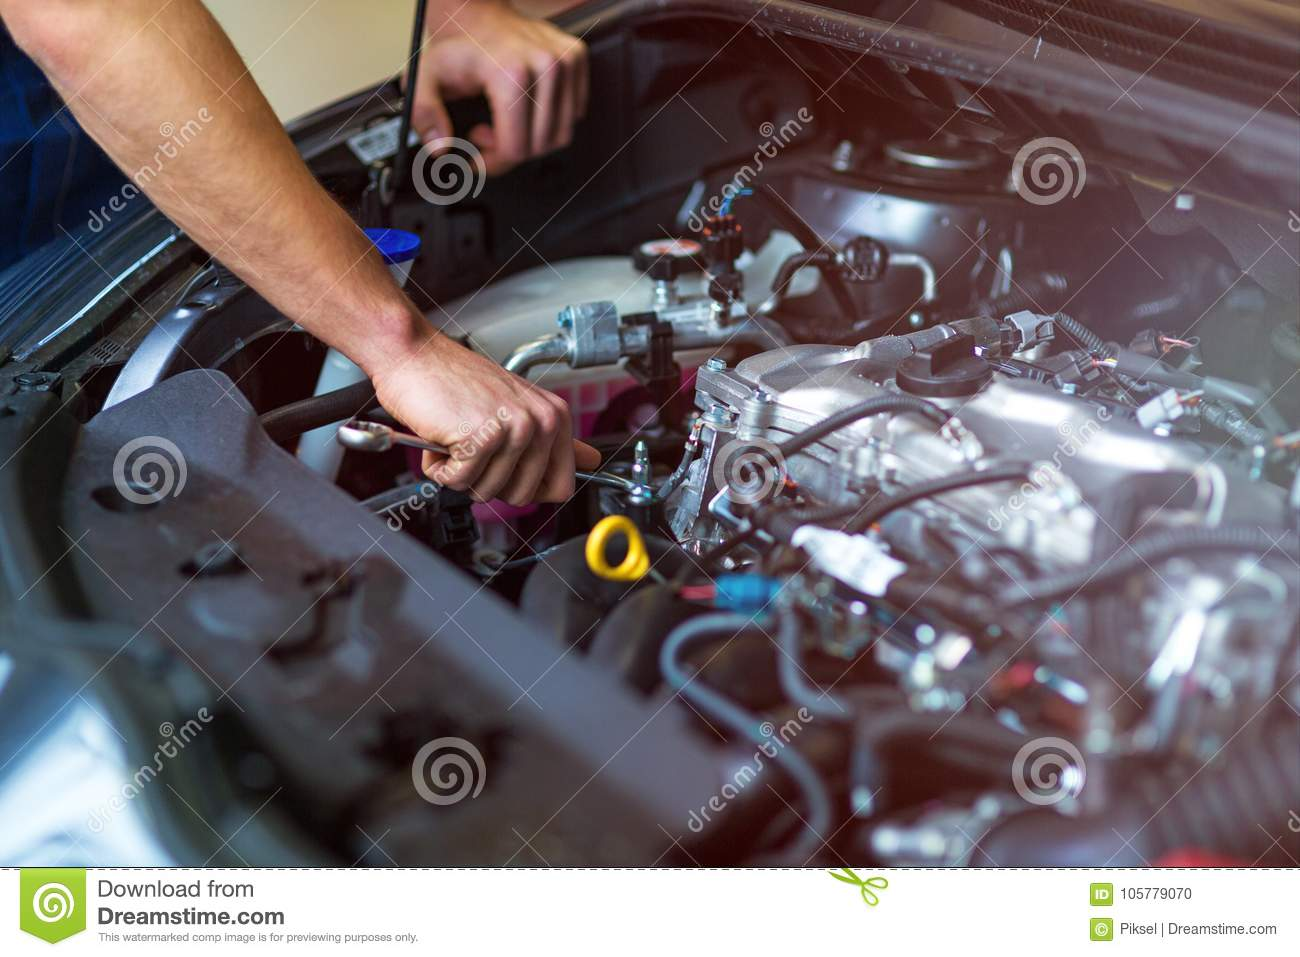 Mechanic working on car engine in auto repair shop